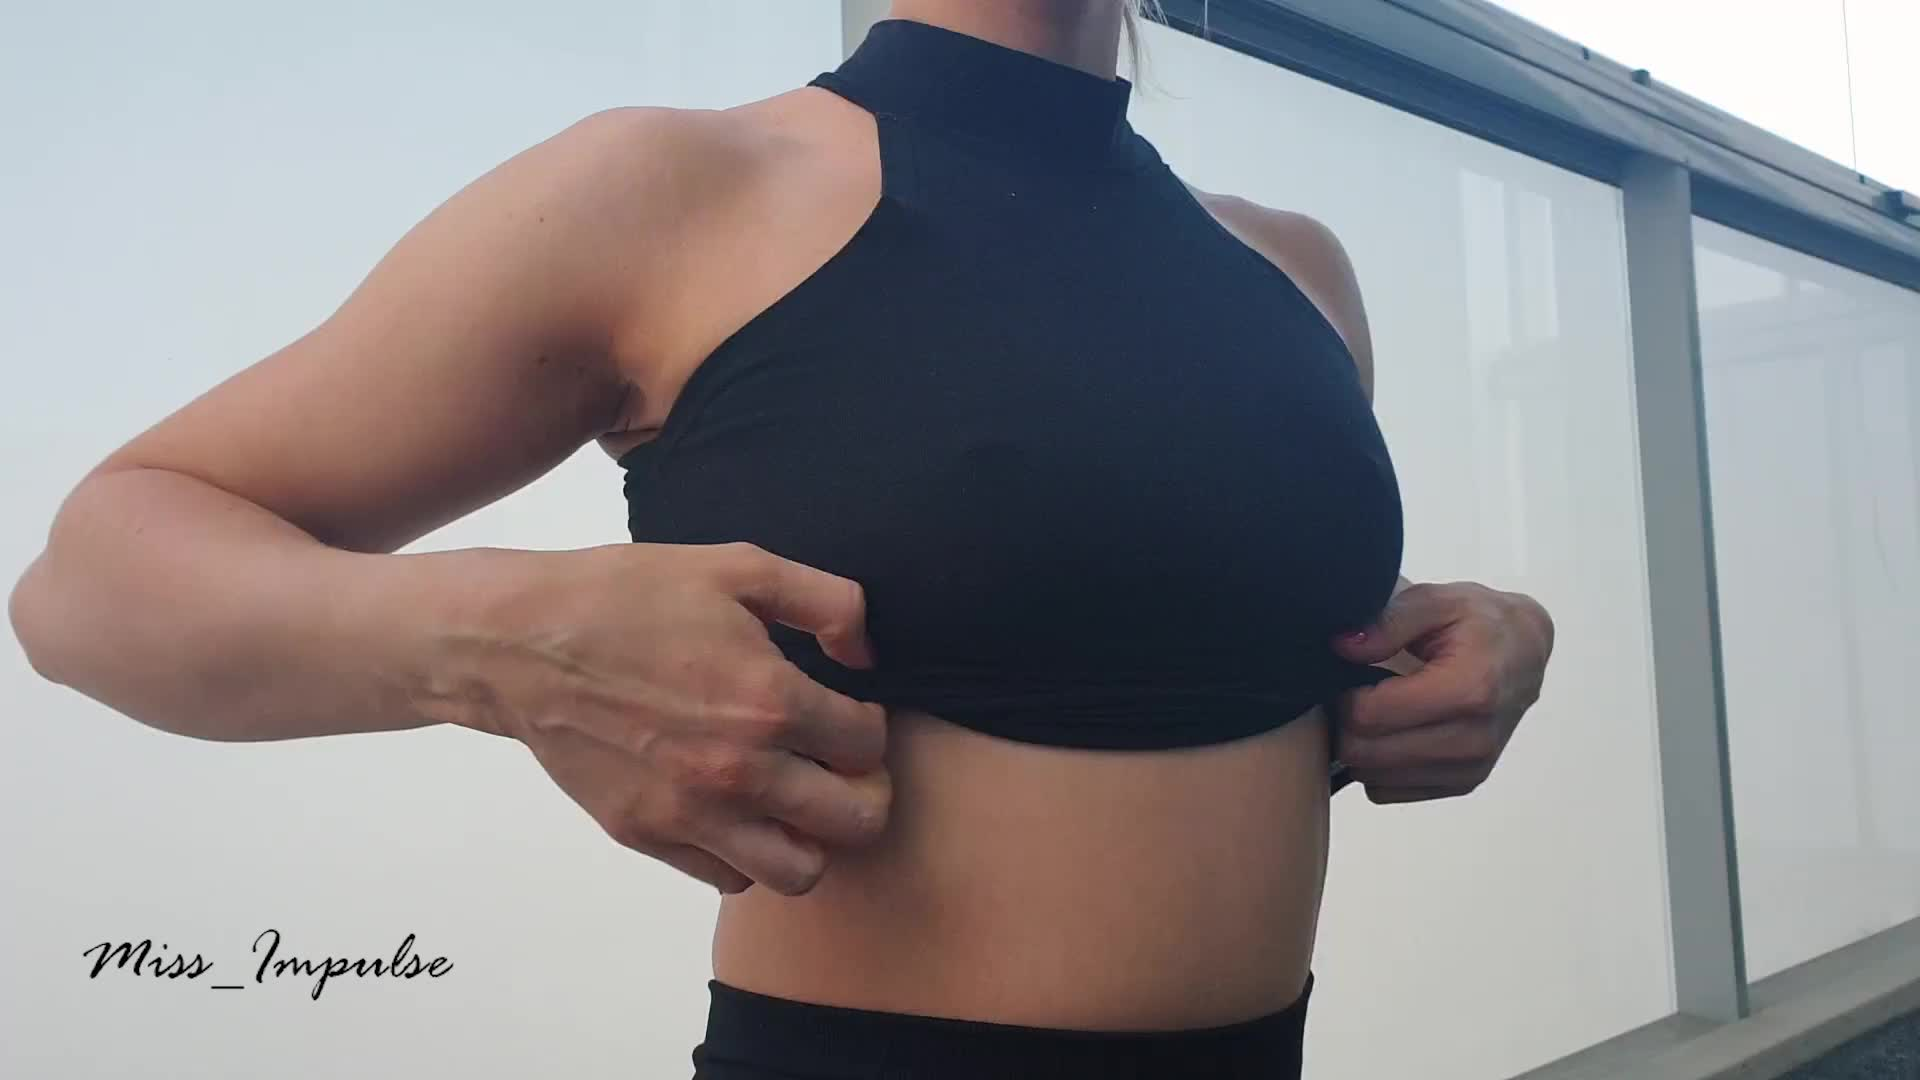 My tits are quite small but perky